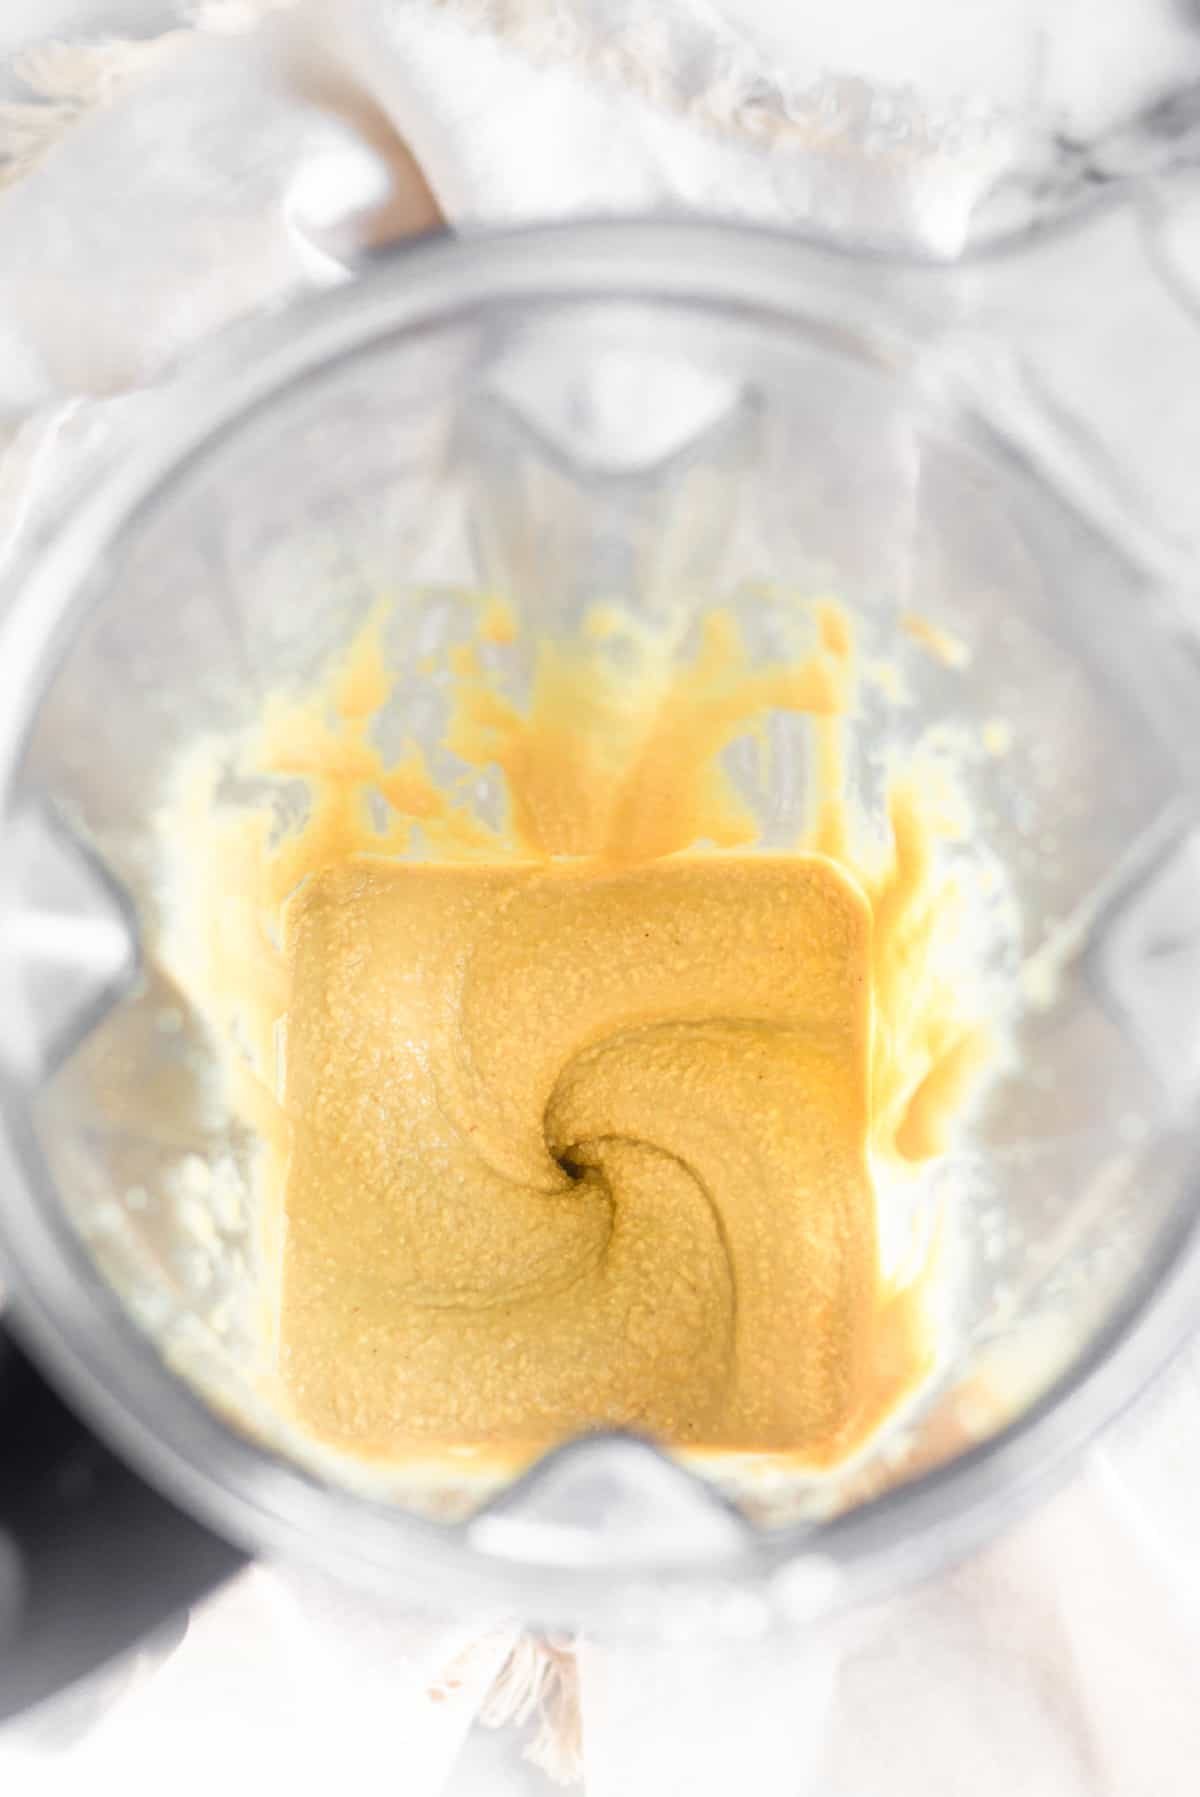 A blender filled with freshly blended cashew coconut butter